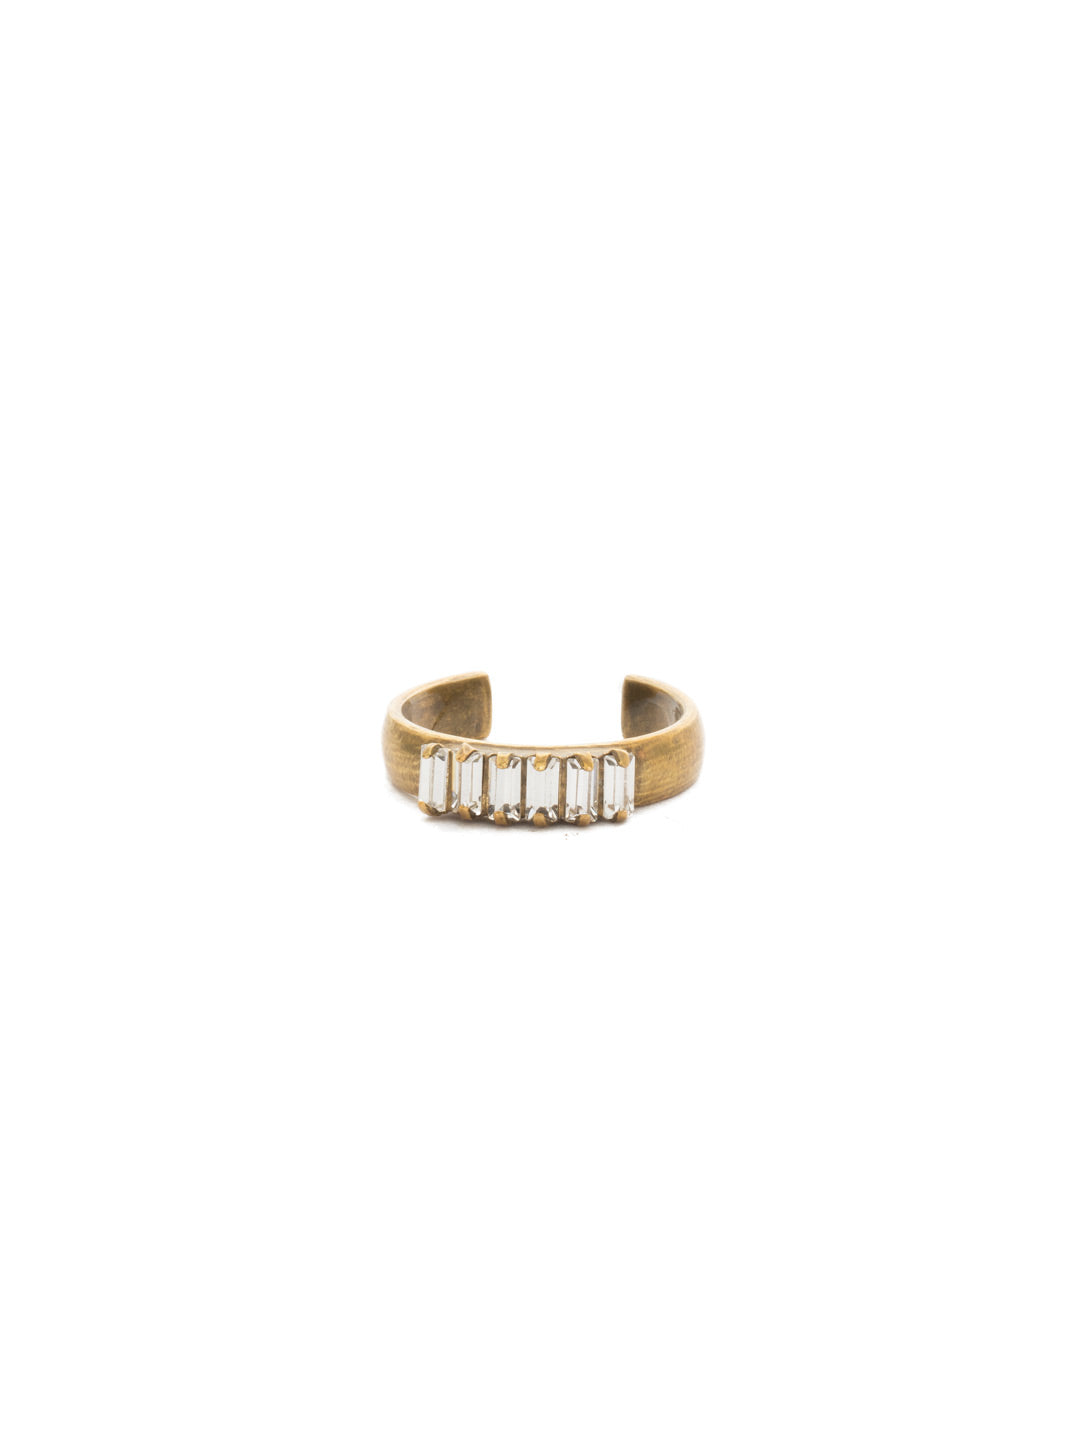 Band Together Adjustable Ring - RDN440AGCRY